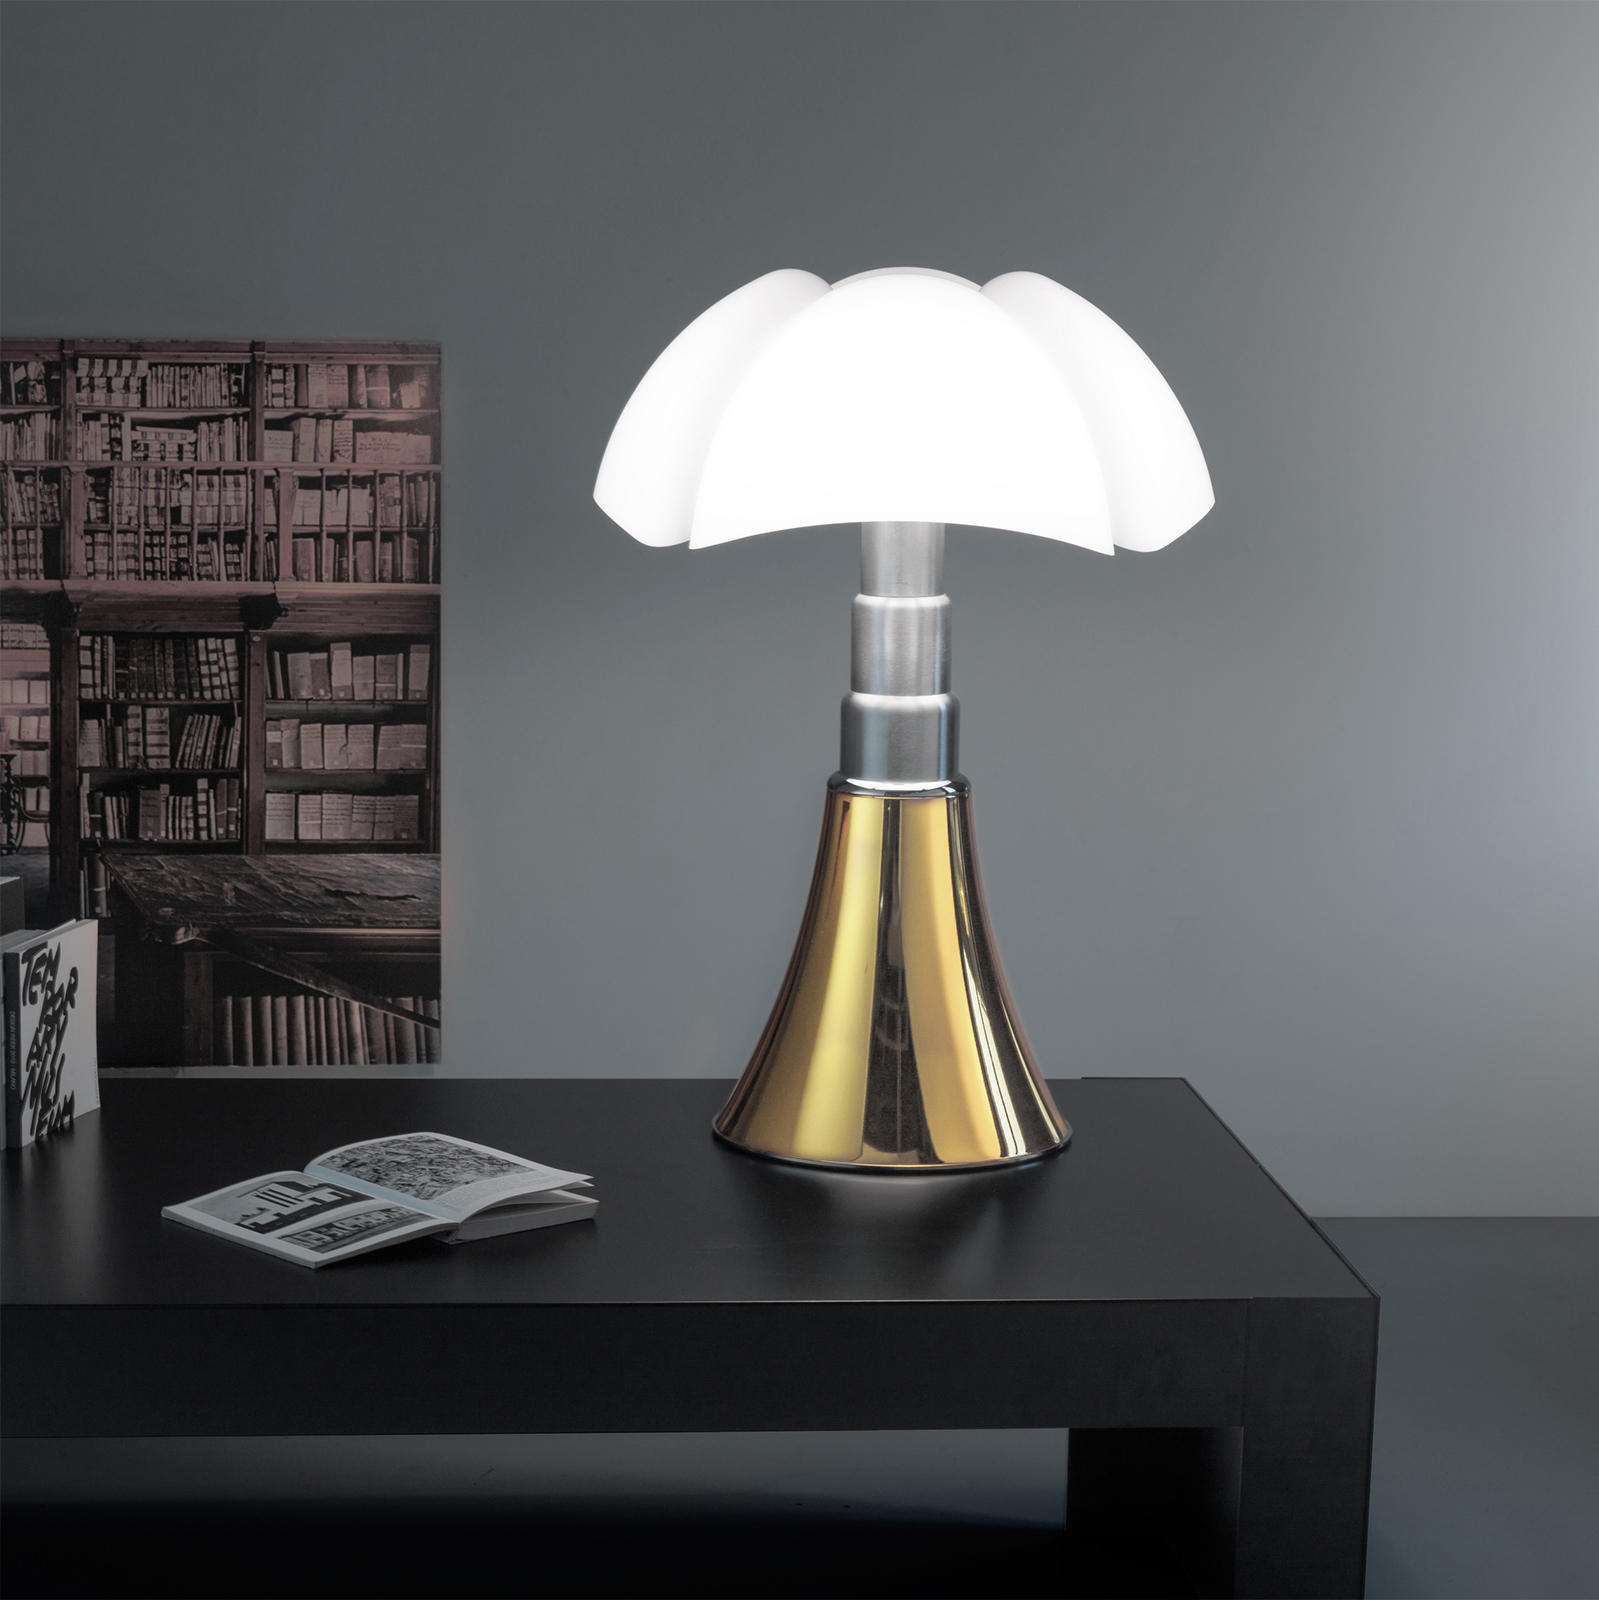 Lampe Pipistrella Pipistrello 50 Anni Golden Table Lights From Martinelli Luce